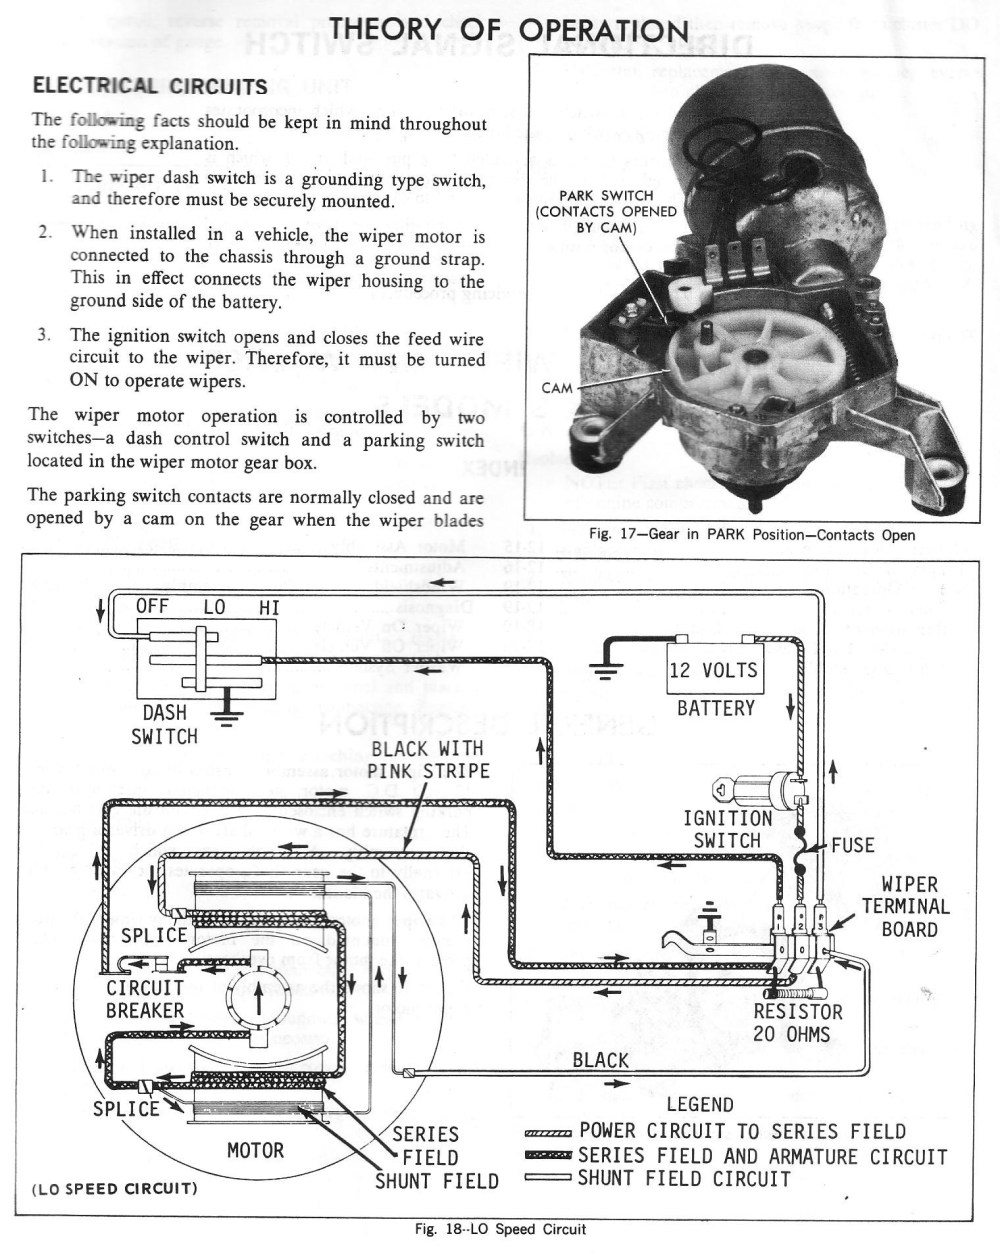 medium resolution of 1957 chevy wiper motor wiring diagram residential electrical symbols u2022 77 corvette windshield wiper wiring